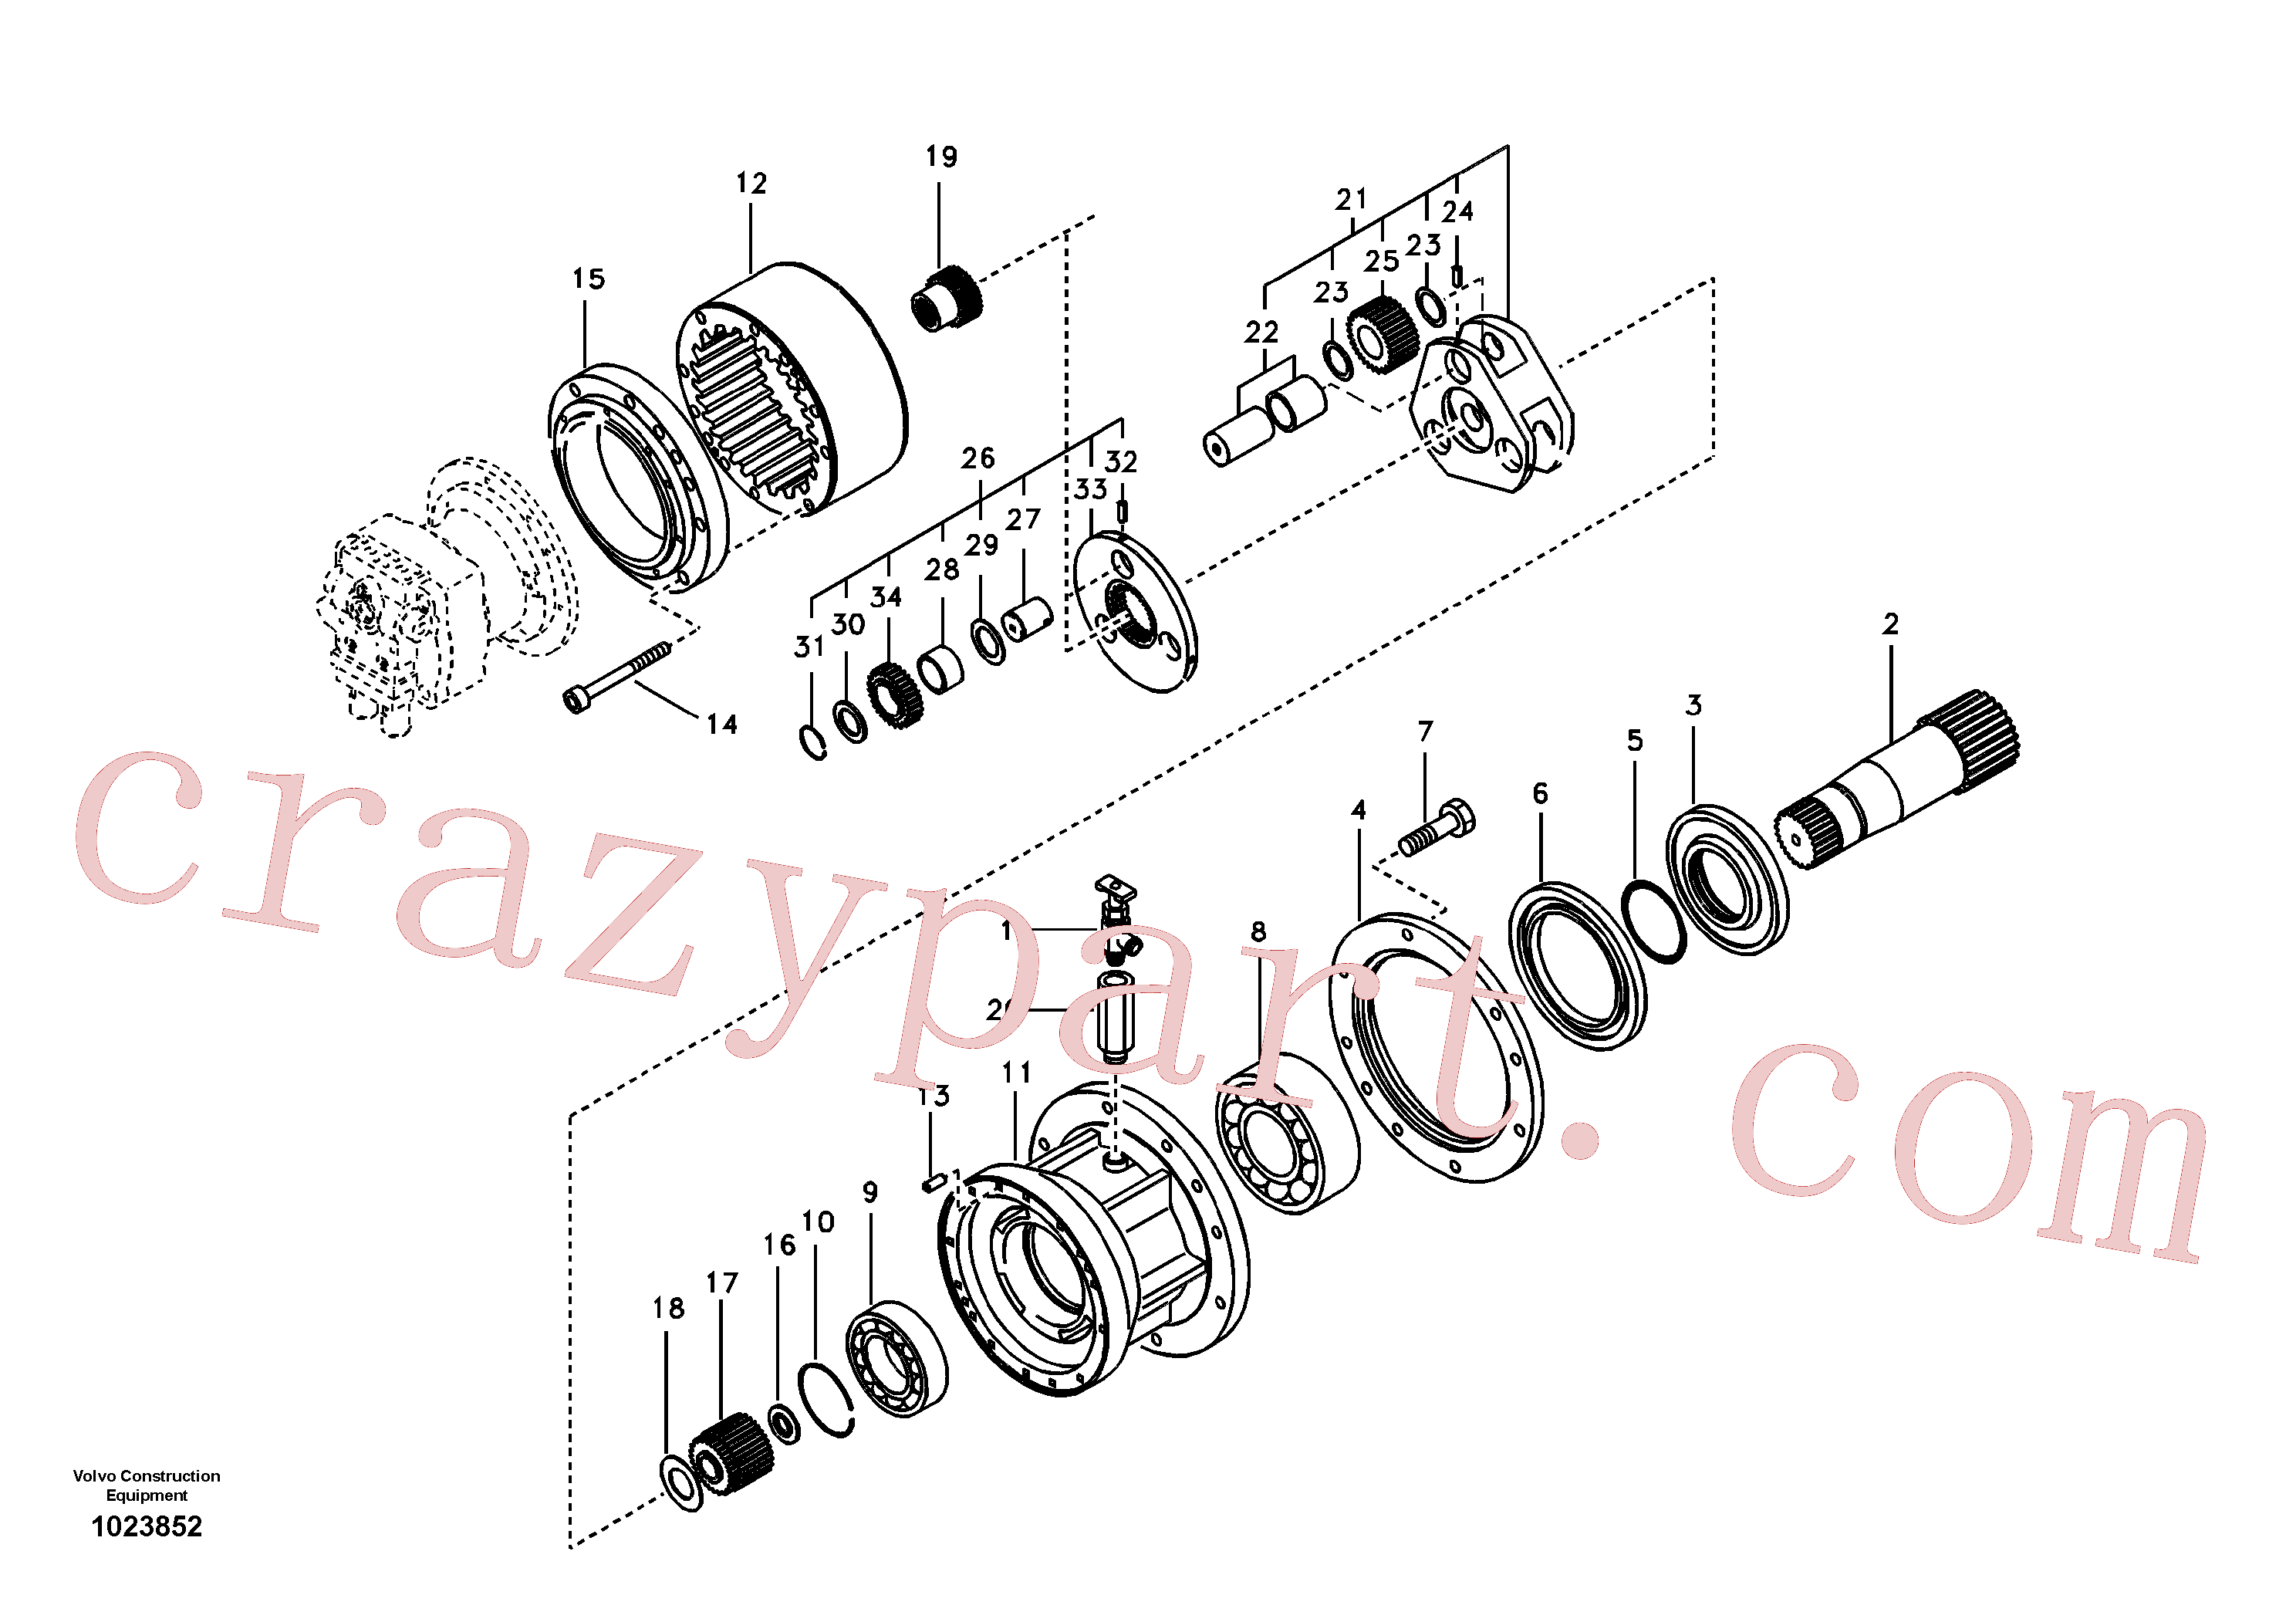 SA7118-30370 for Volvo Swing gearbox(1023852 assembly)